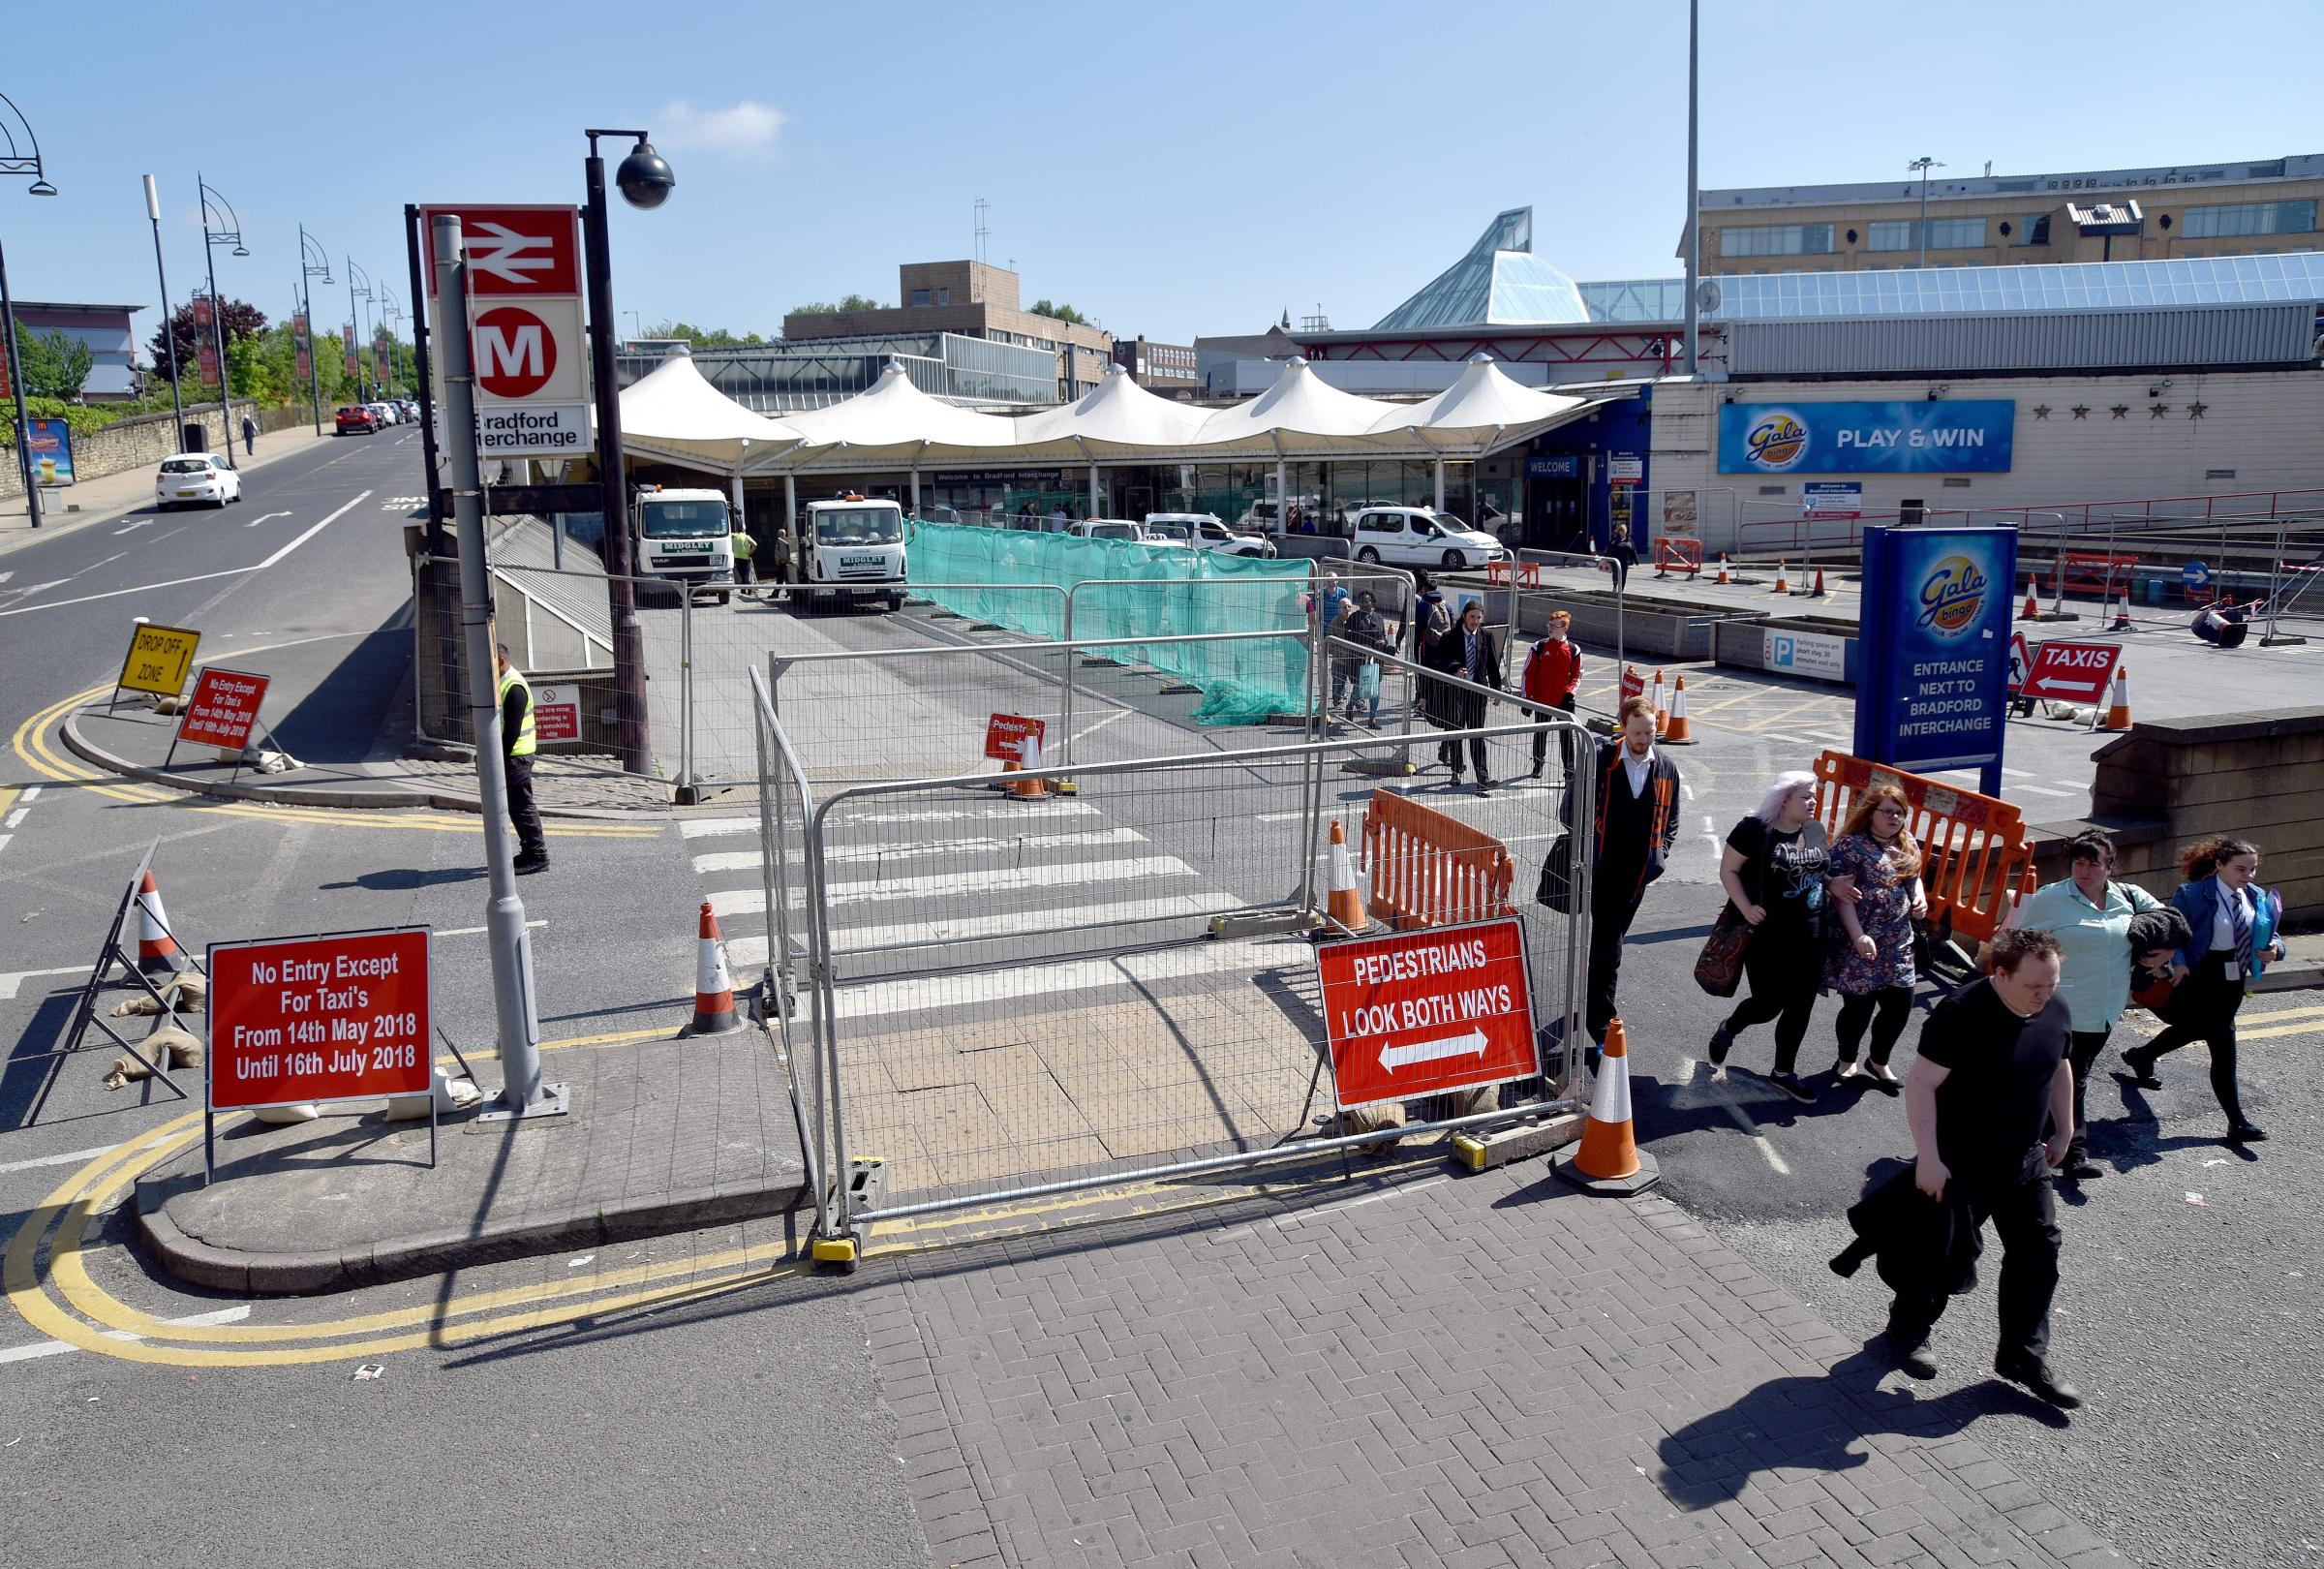 Work underway at Bradford Interchange